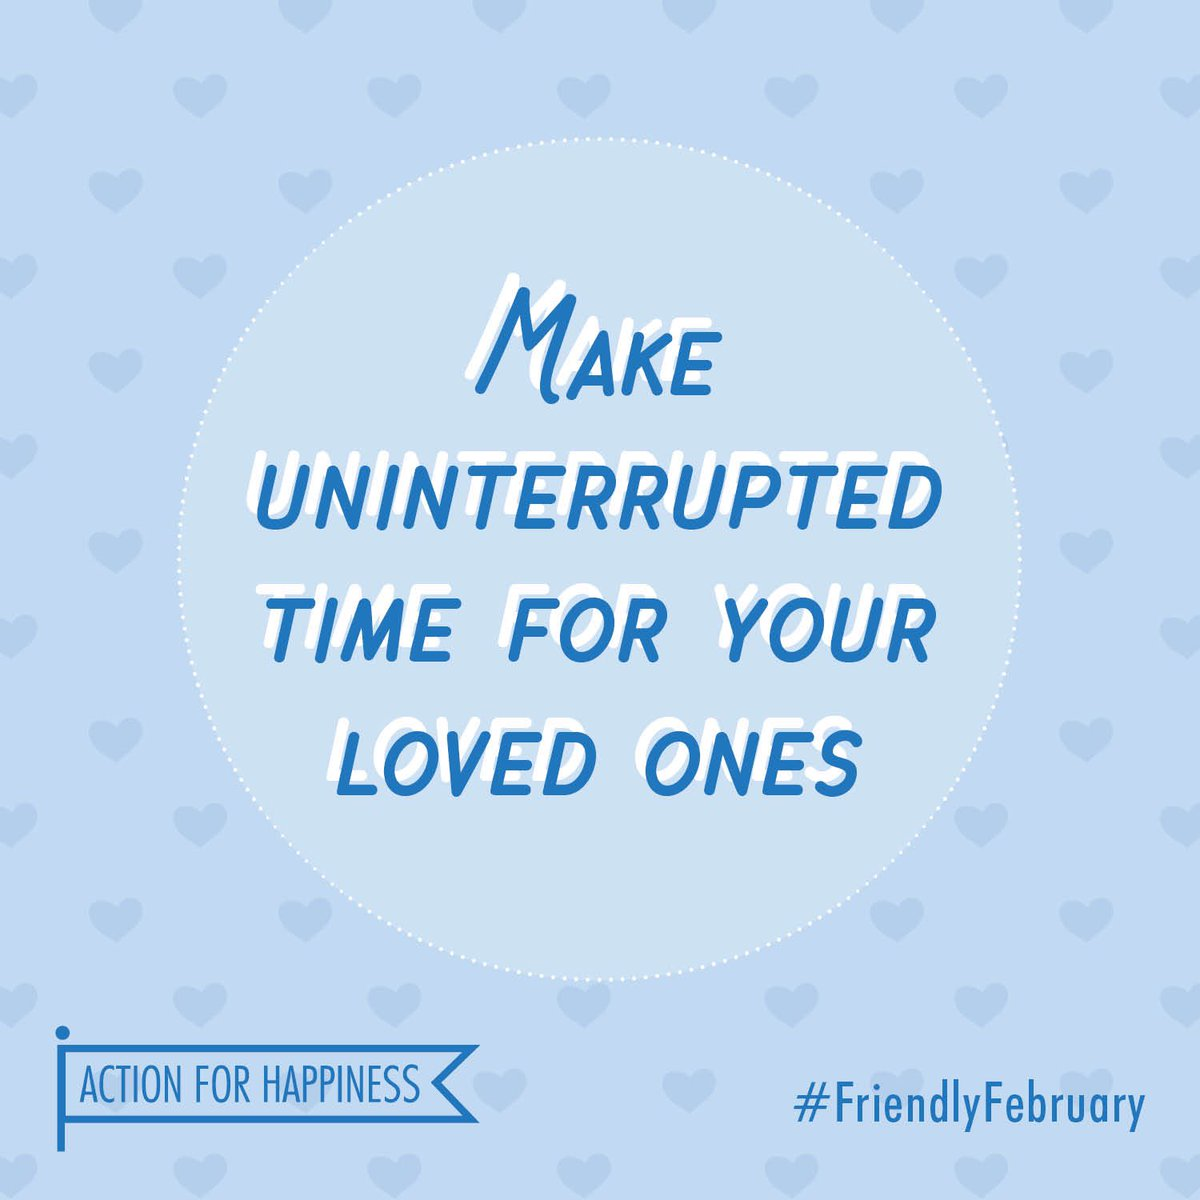 Friendly February - Day 28: Make uninterrupted time for your loved ones actionforhappiness.org/february #FriendlyFebruary